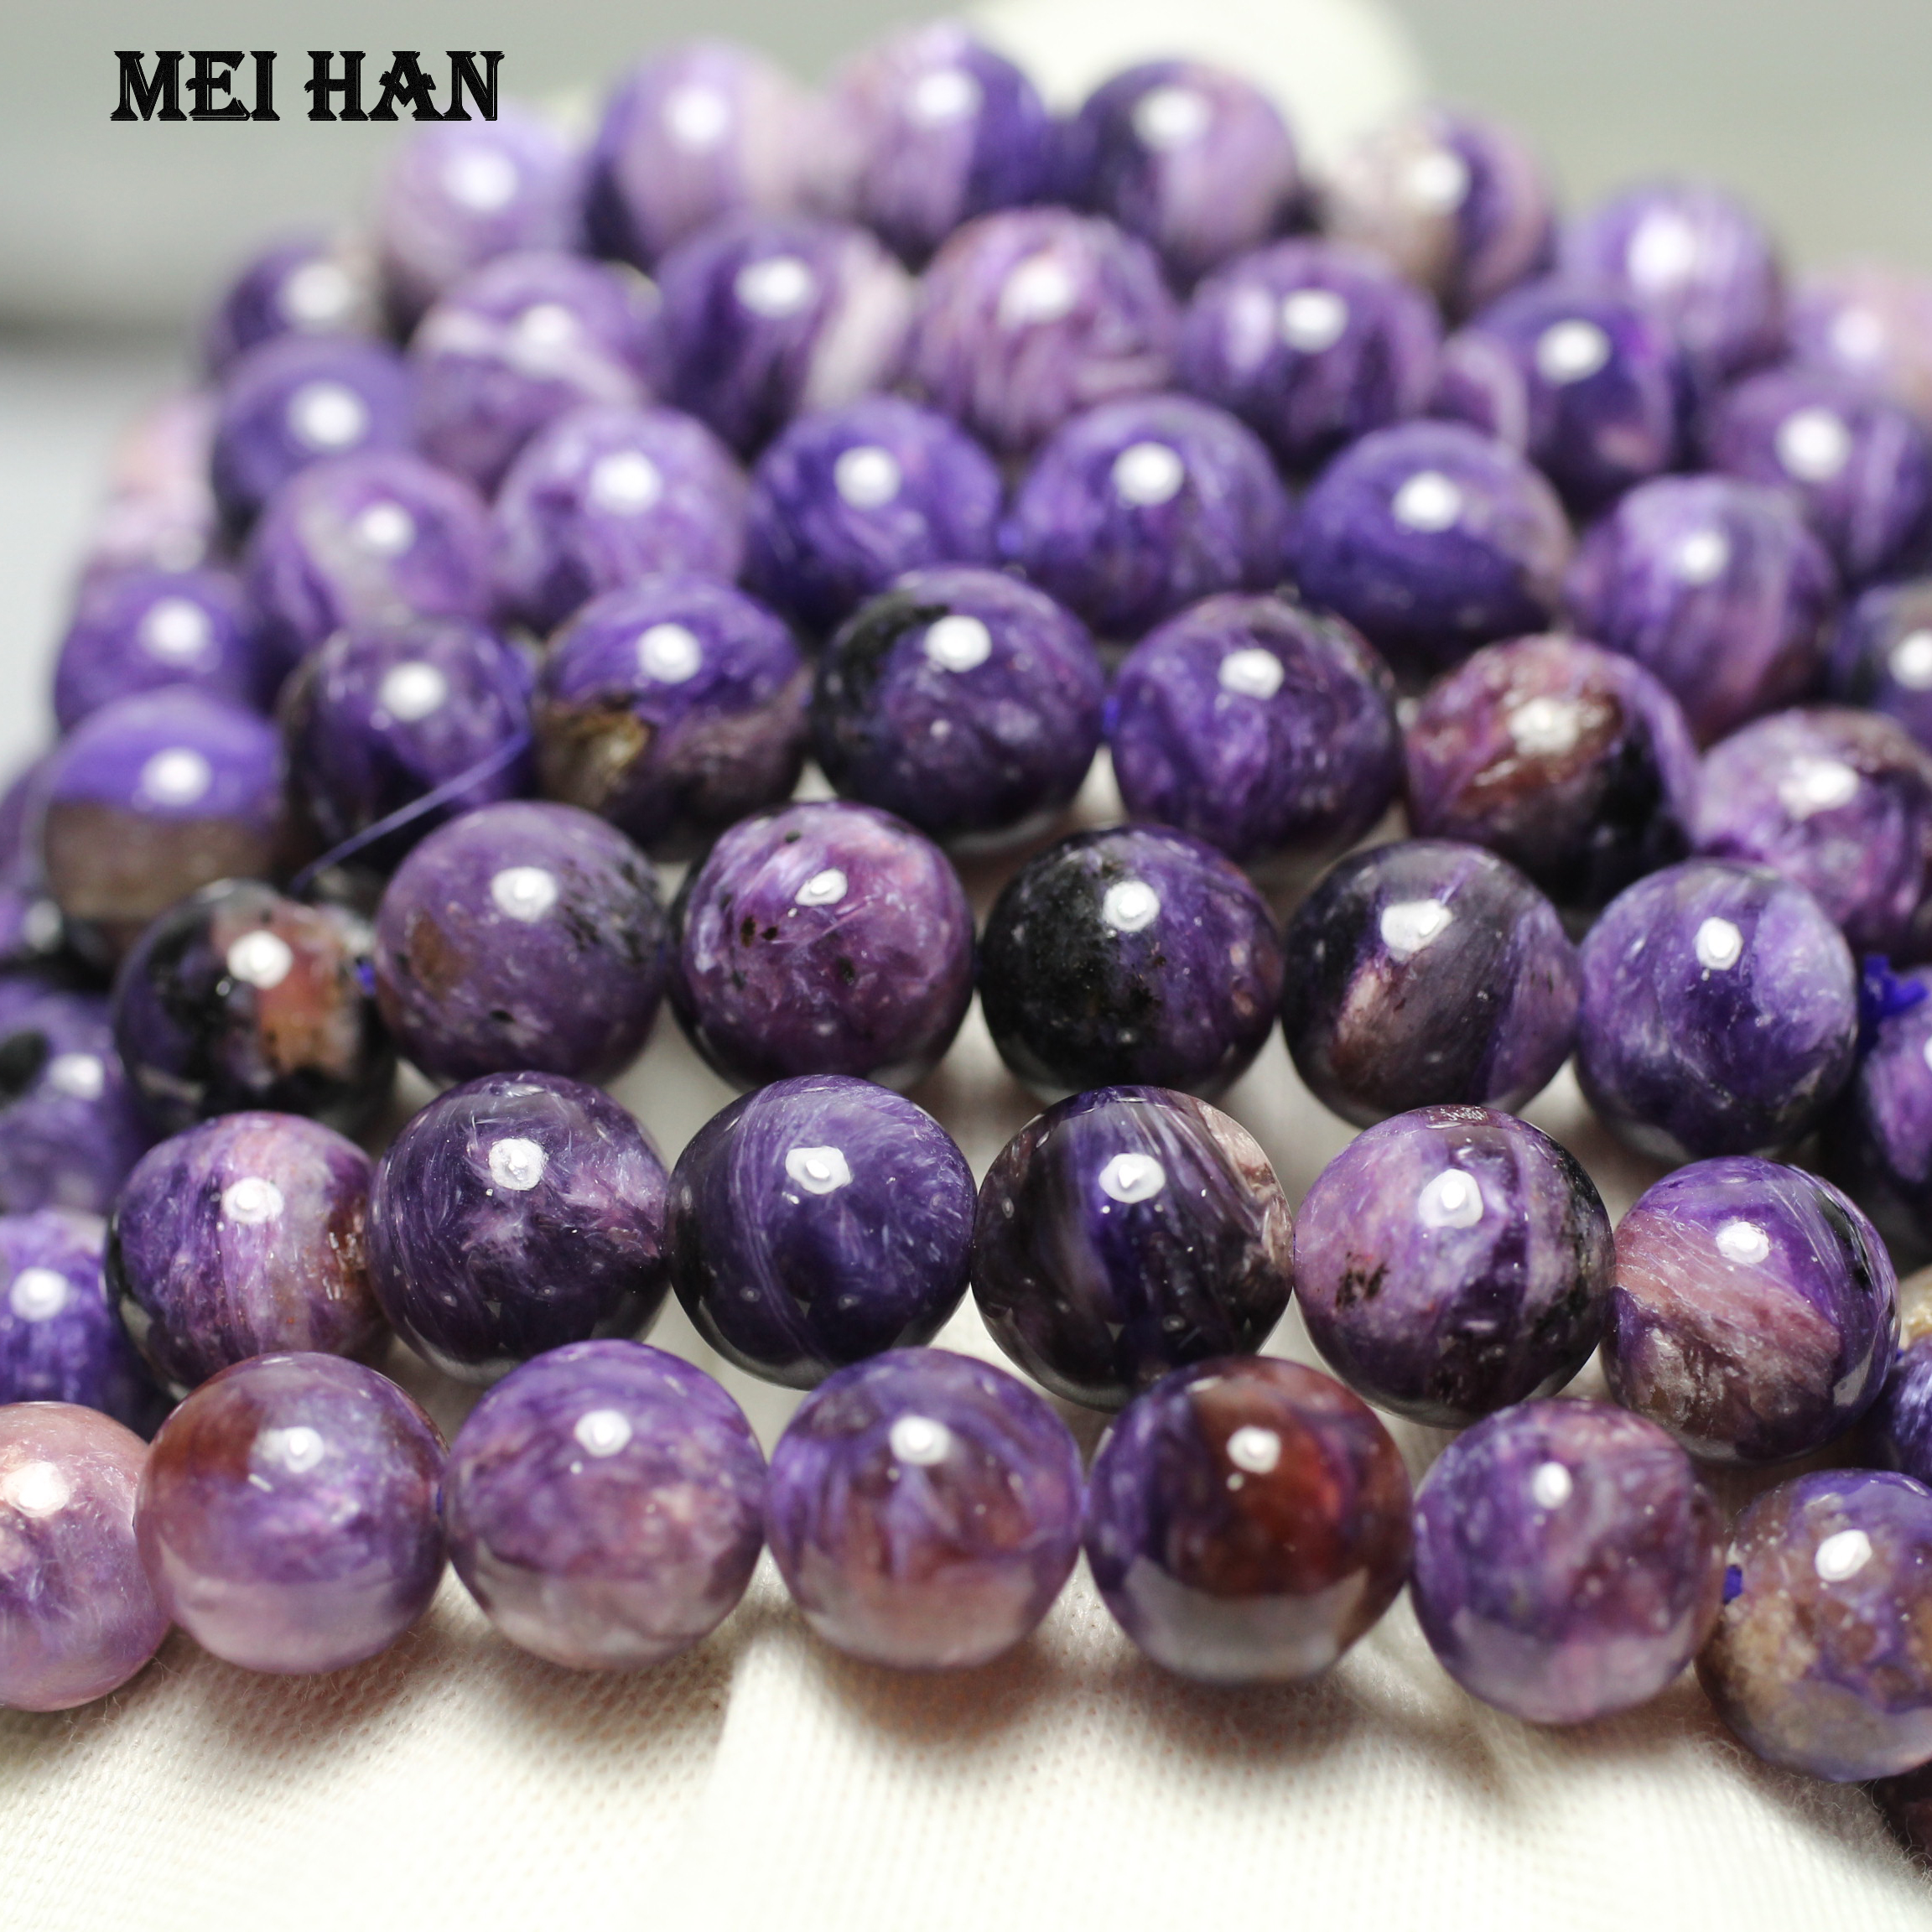 Meihan Free shipping (38 pcs/set/50g) 9.8-10mm natural Russian Charoite  smooth round charm gemstone for jewelry making(China)